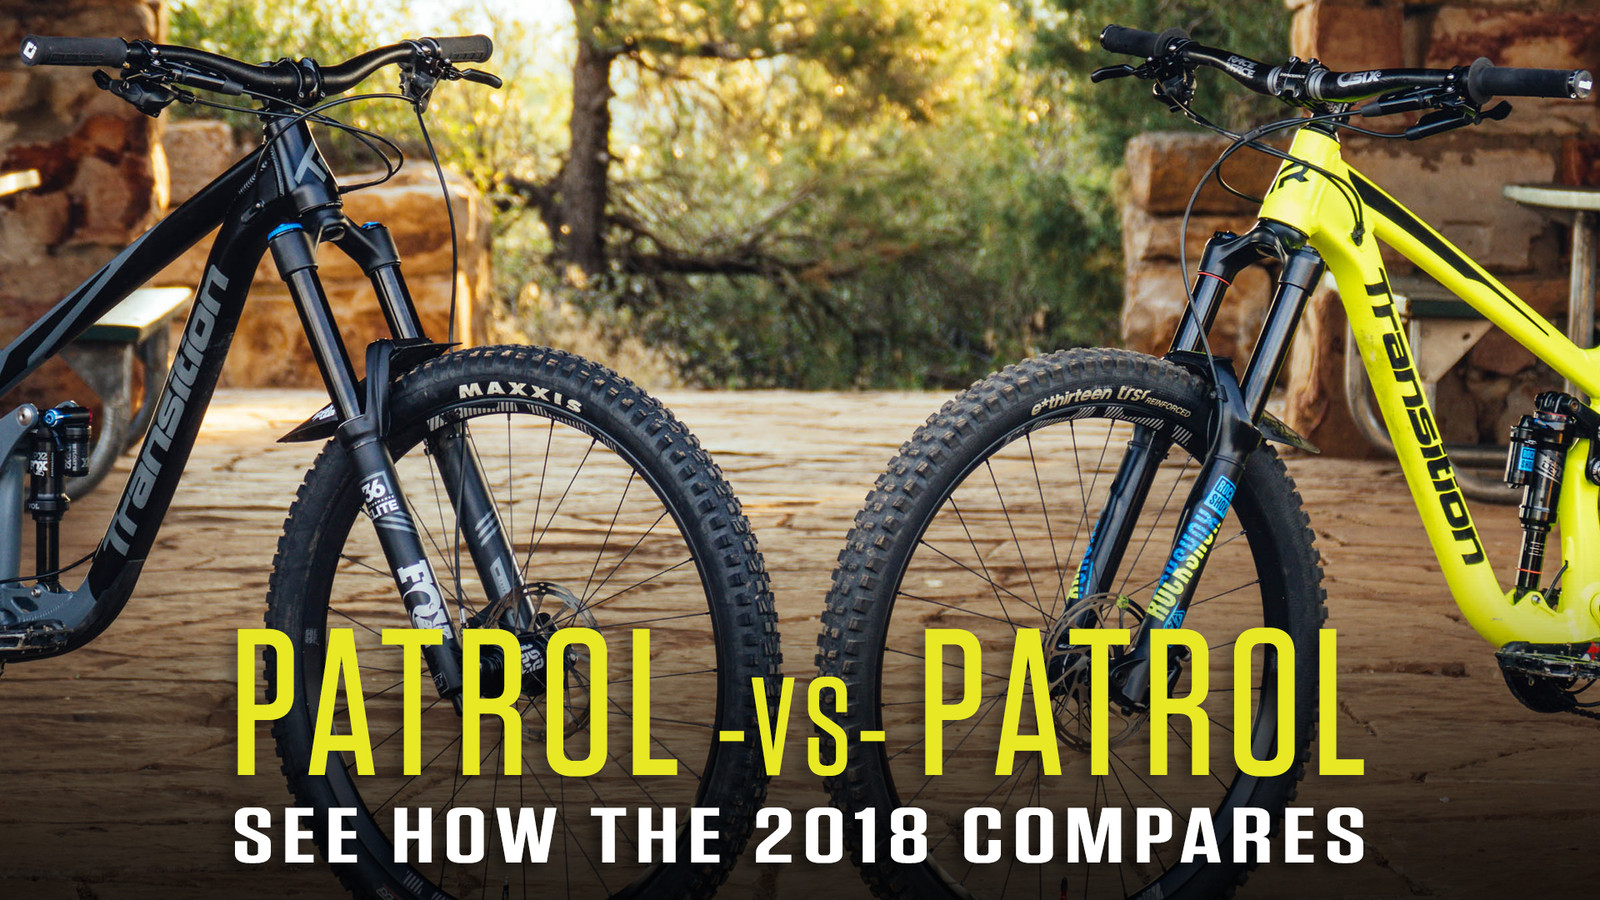 Transition Patrol vs. Patrol - See How the 2018 Compares